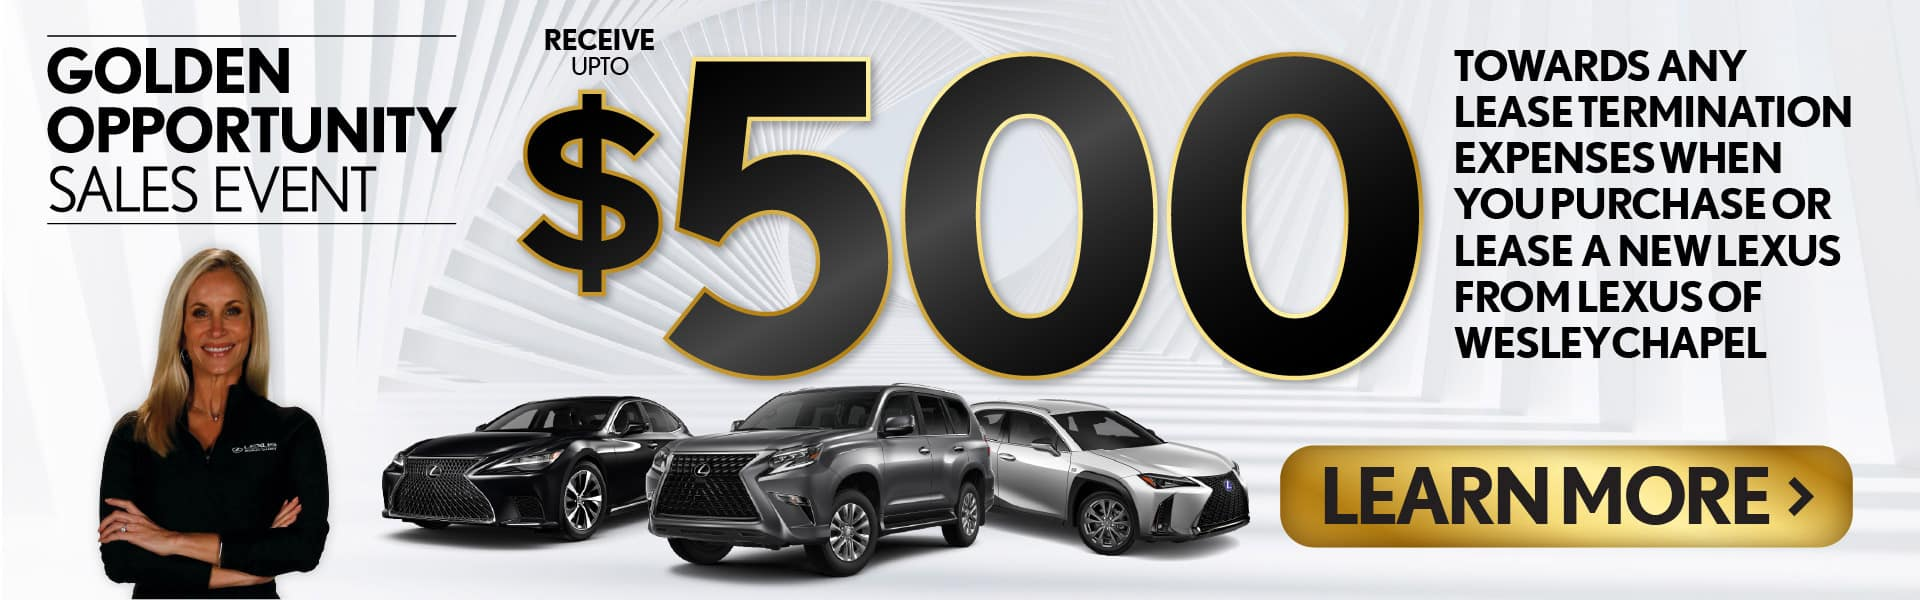 Golden Opportunity Sales Event. Recieve up to $500 TOWARDS ANY LEASE TERMINATION EXPENSES WHEN YOU PURCHASE OR LEASE A NEW LEXUS FROM Lexus of Wesley Chapel. Value Your Trade.